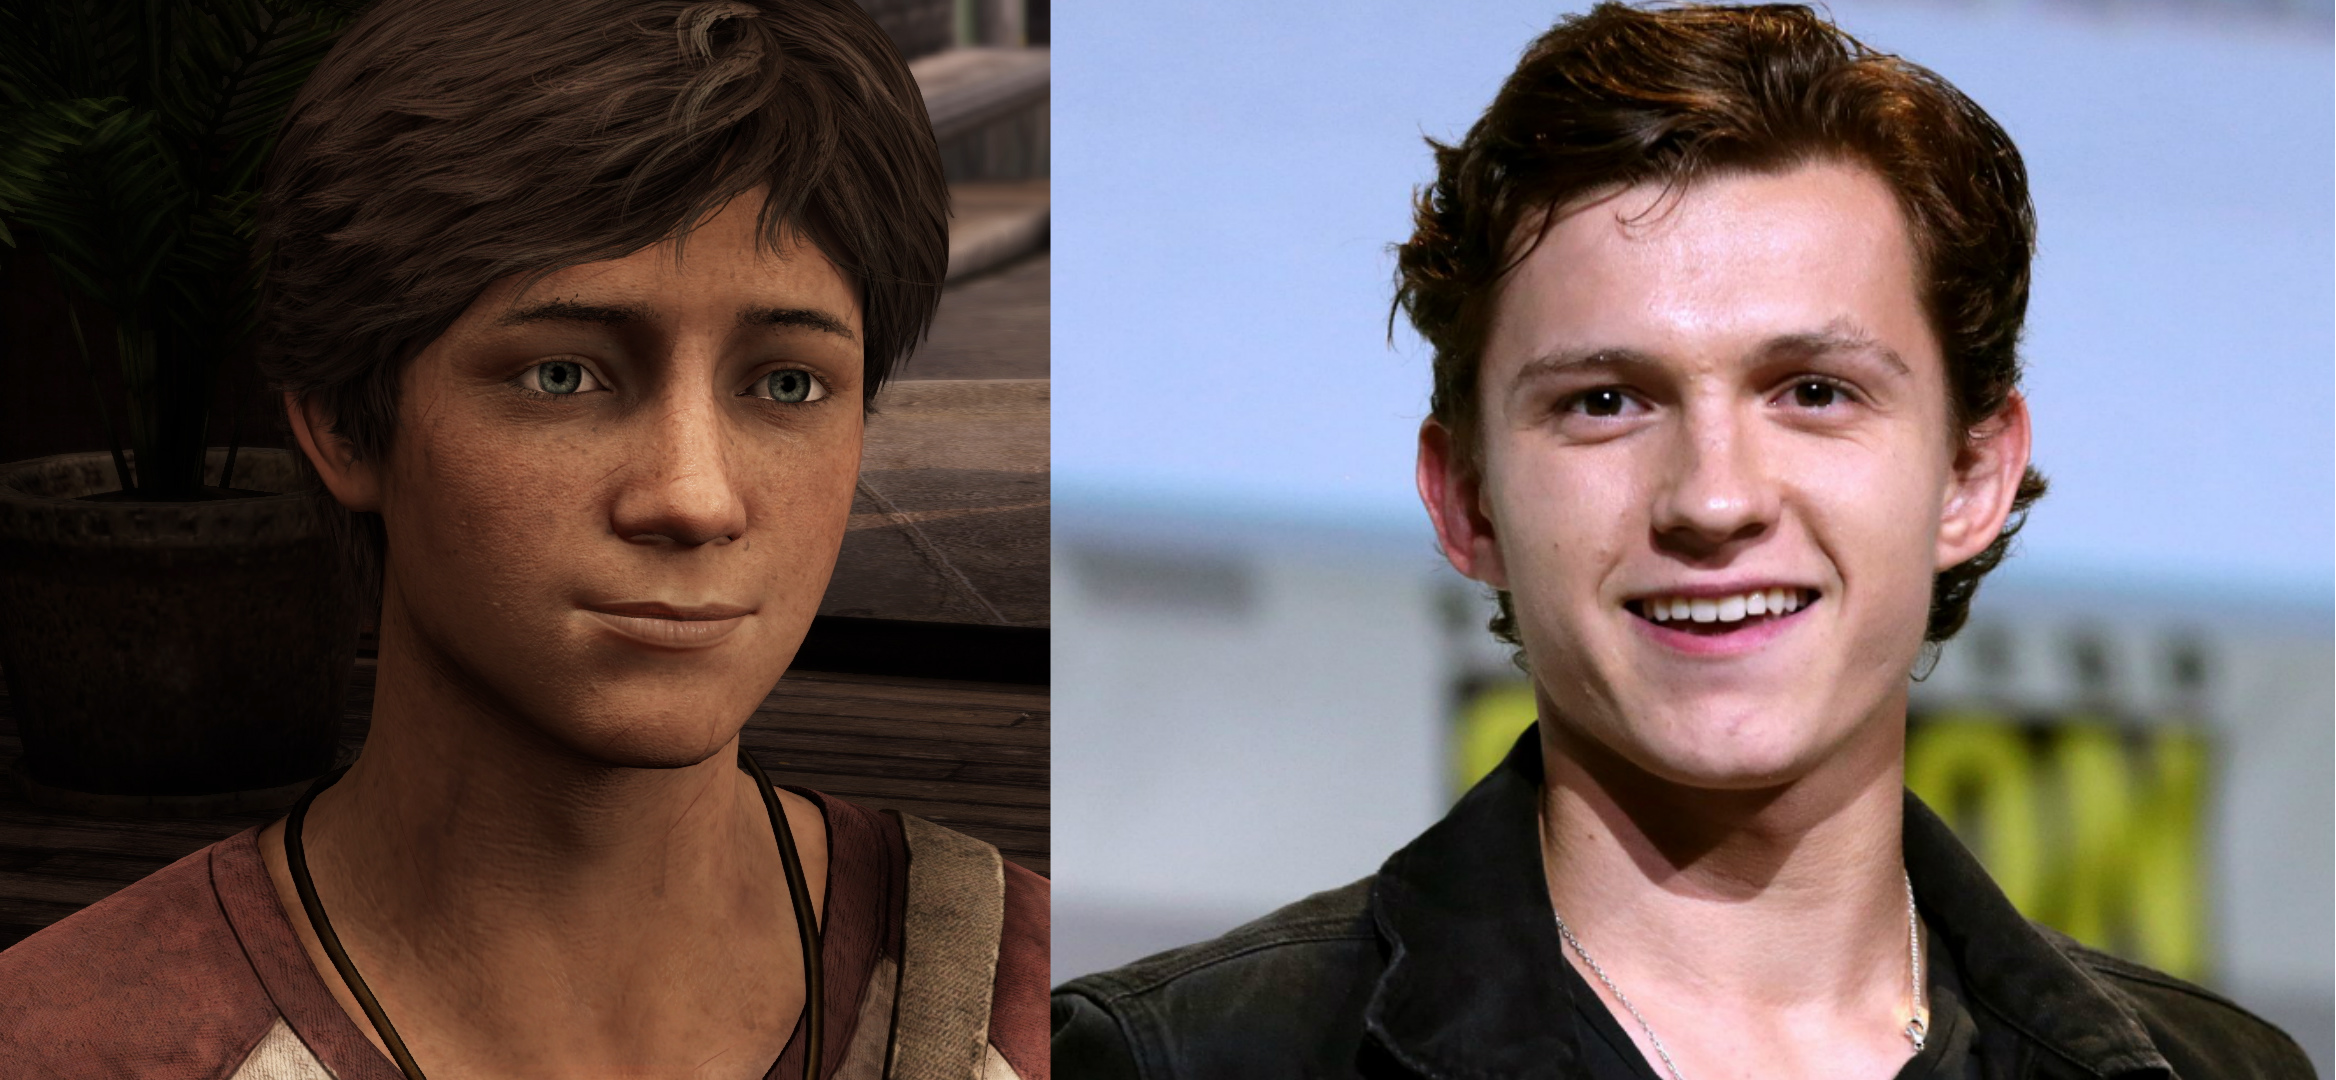 Uncharted Film Focuses On A Young Nathan Drake Played By Tom